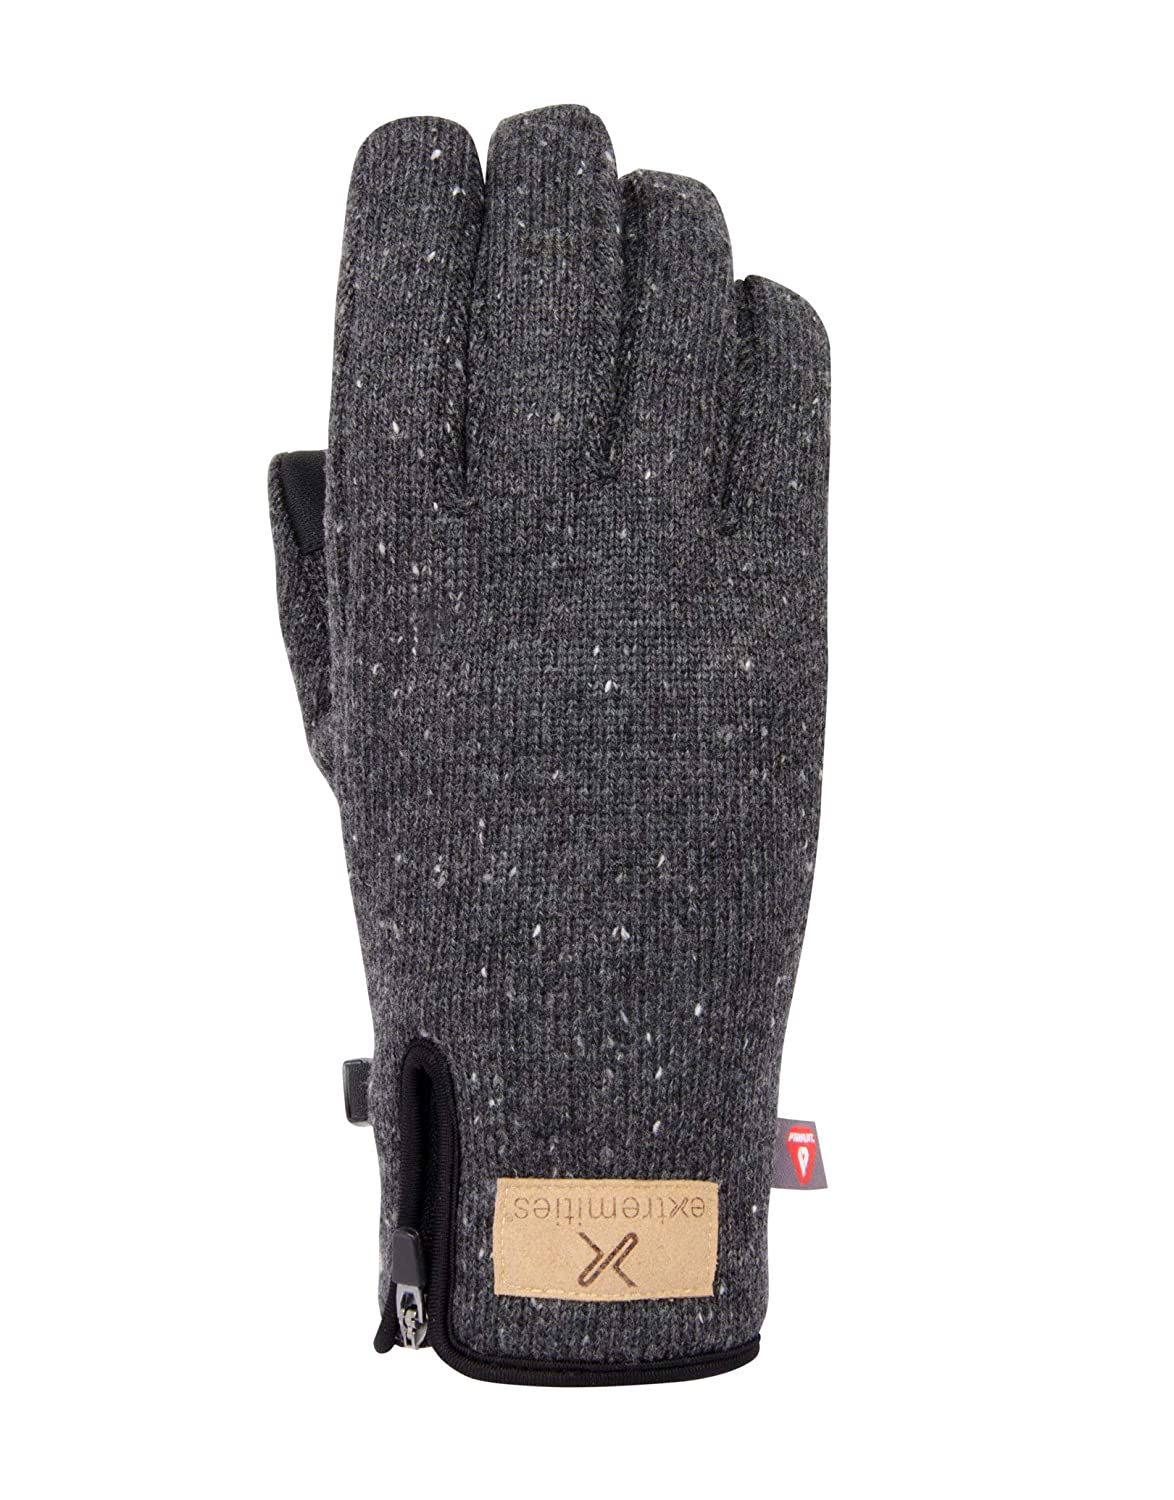 Furnace Pro Glove - Dark Grey Marl EXTREMITIES